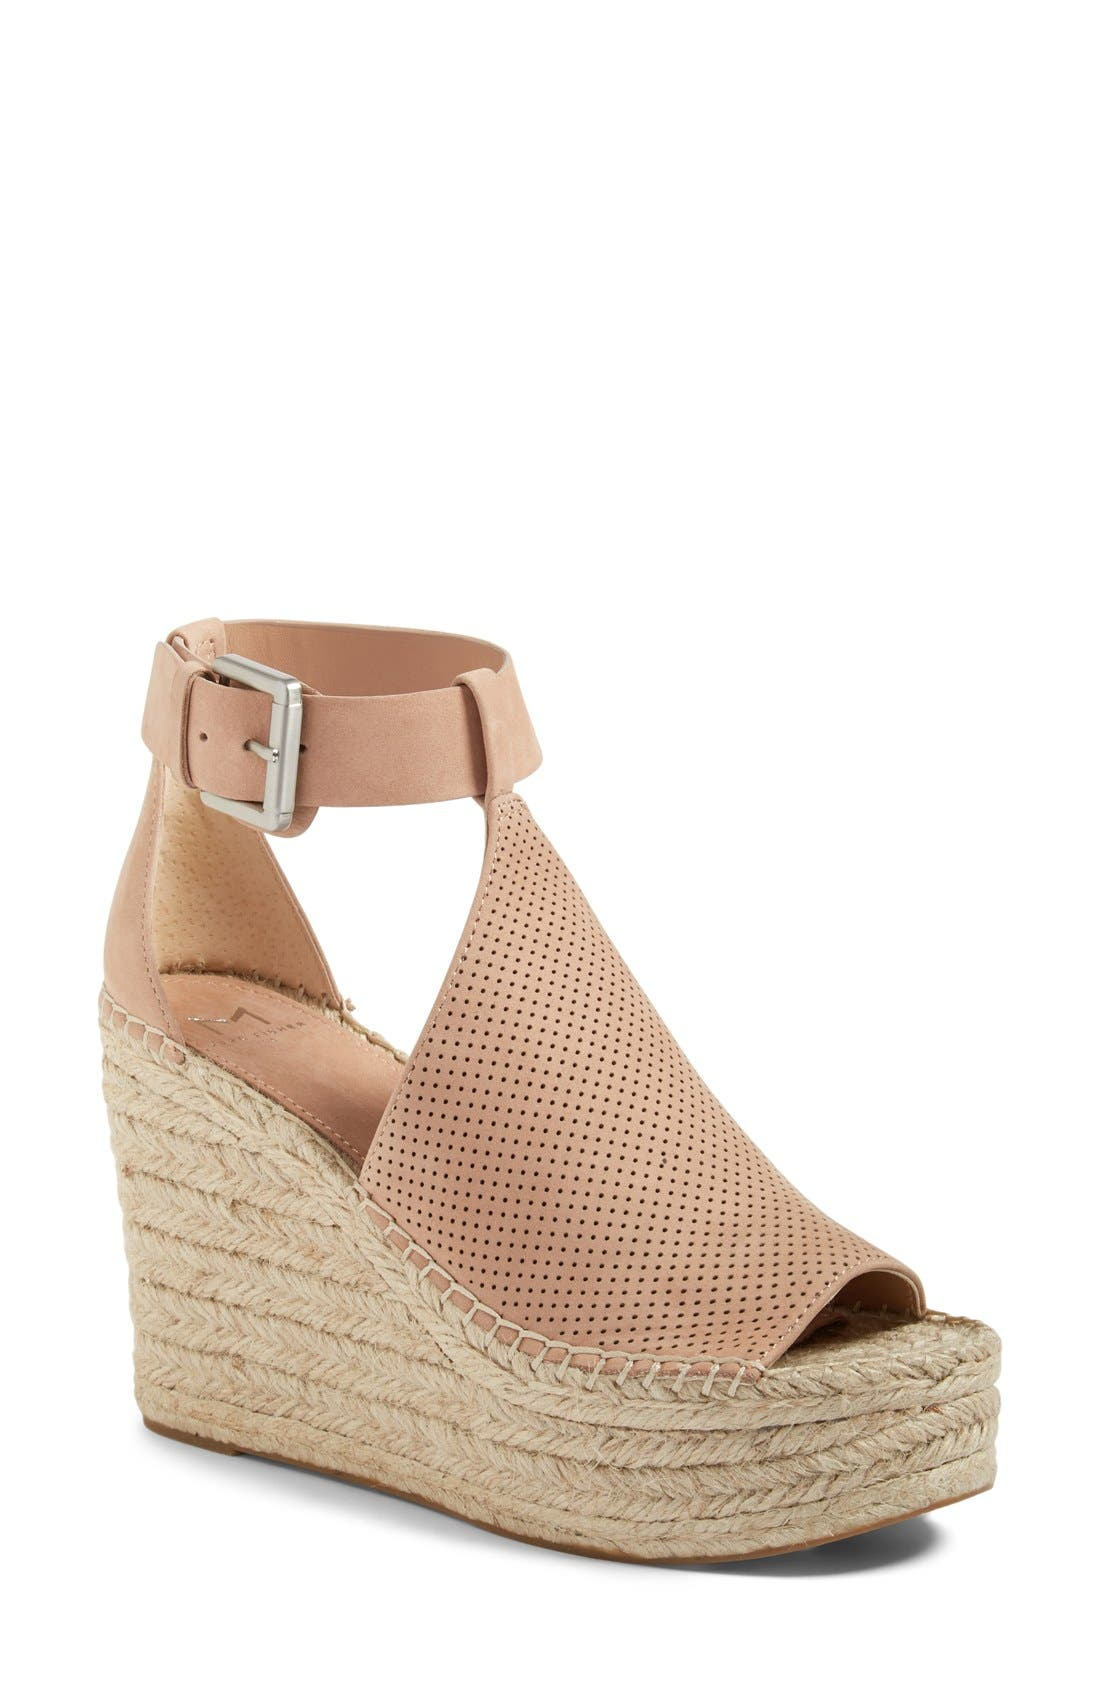 Alternate Image 1 Selected - Marc Fisher LTD Annie Perforated Espadrille Platform Wedge (Women)